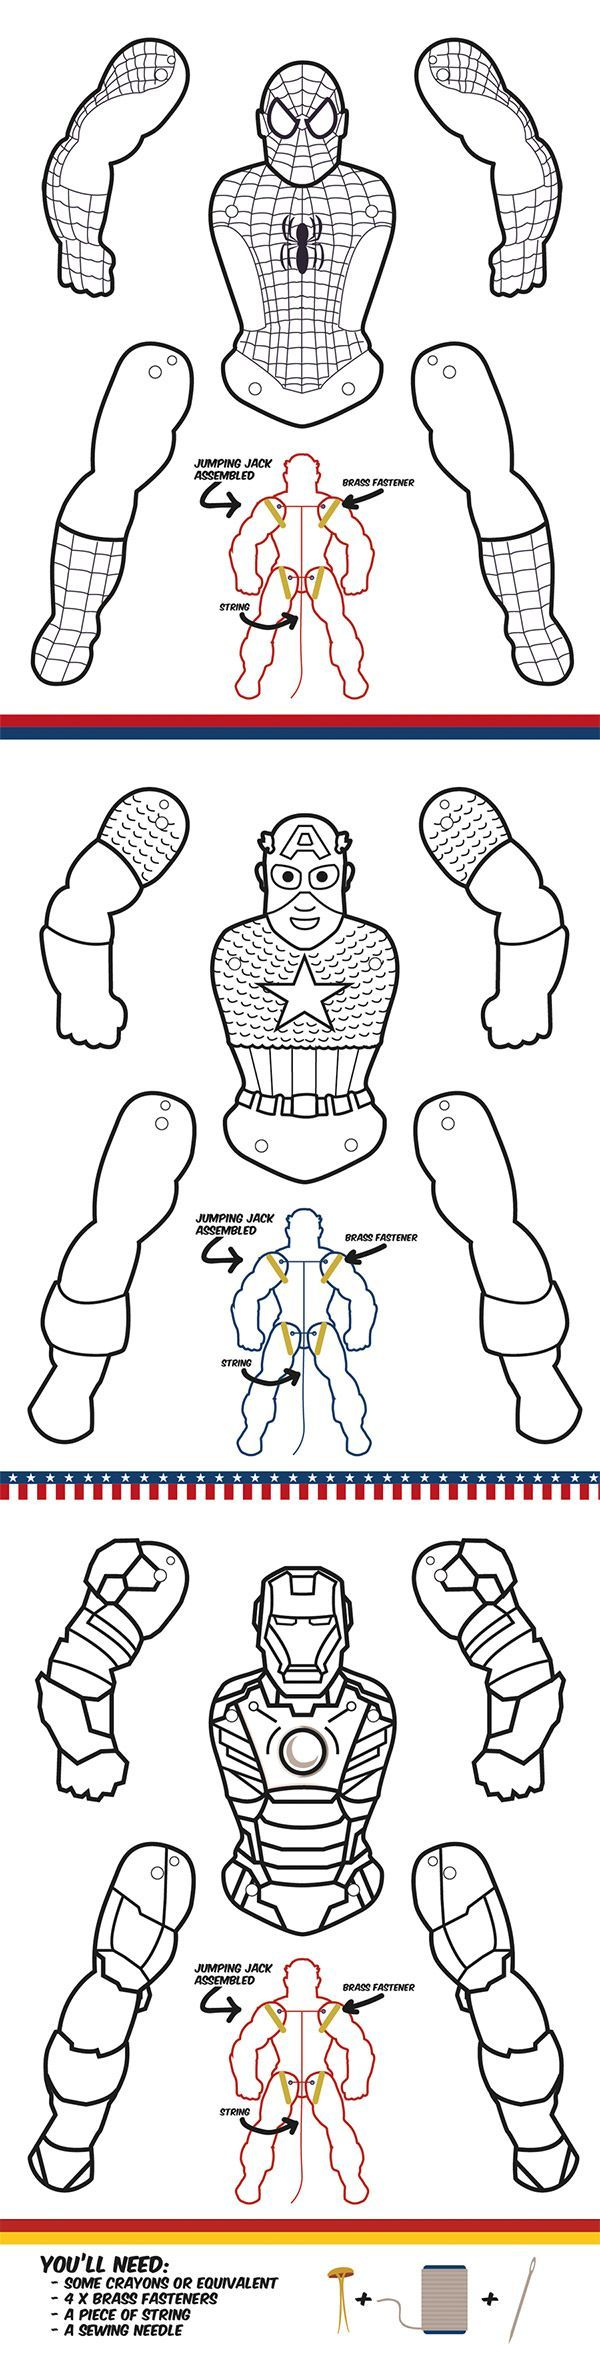 Superhero Jumping Jacks Coloring edition Create your